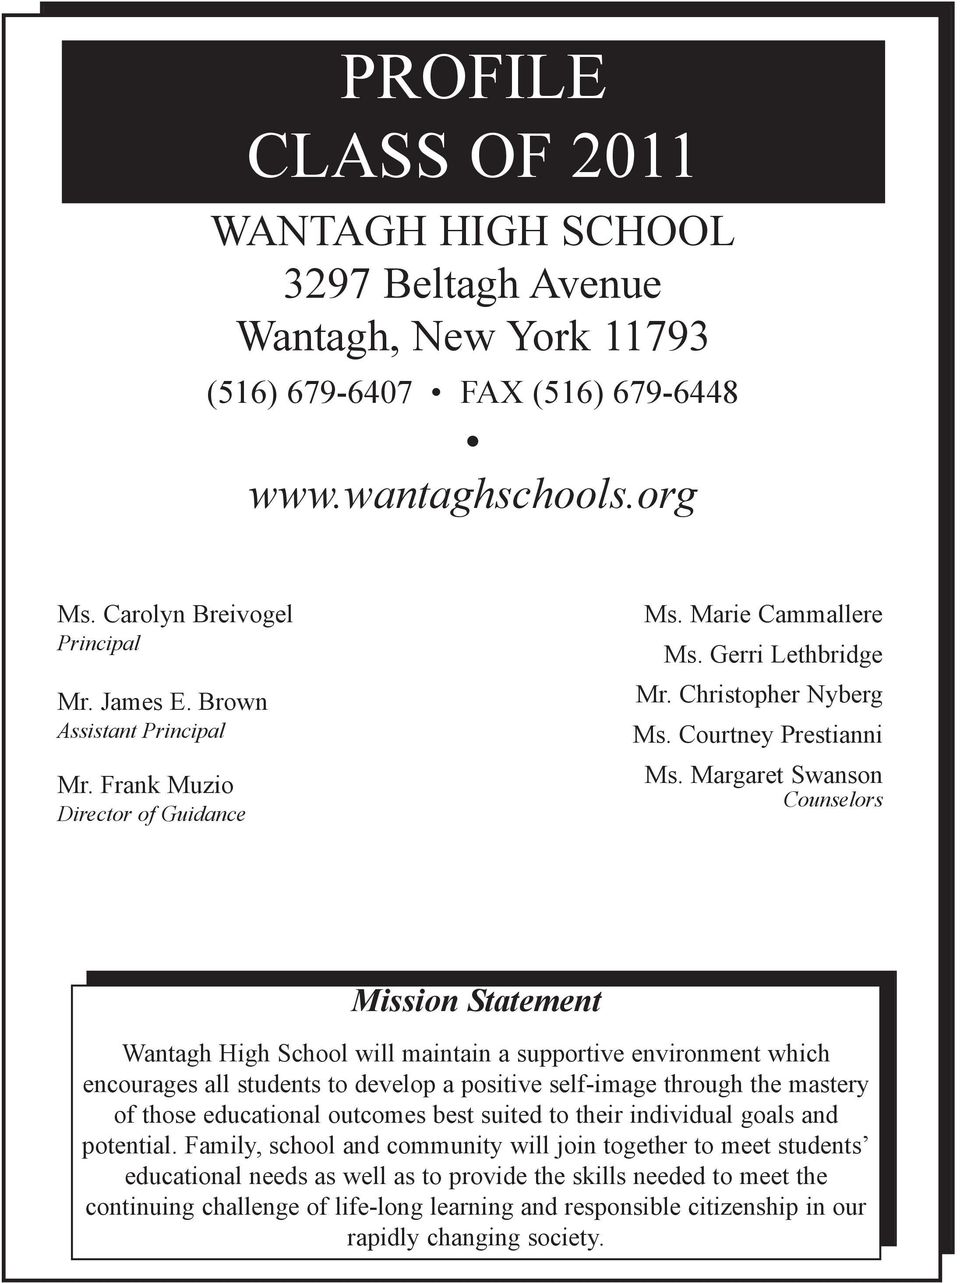 Margaret Swanson Counselors Mission Statement Wantagh High School will maintain a supportive environment which encourages all students to develop a positive self-image through the mastery of those